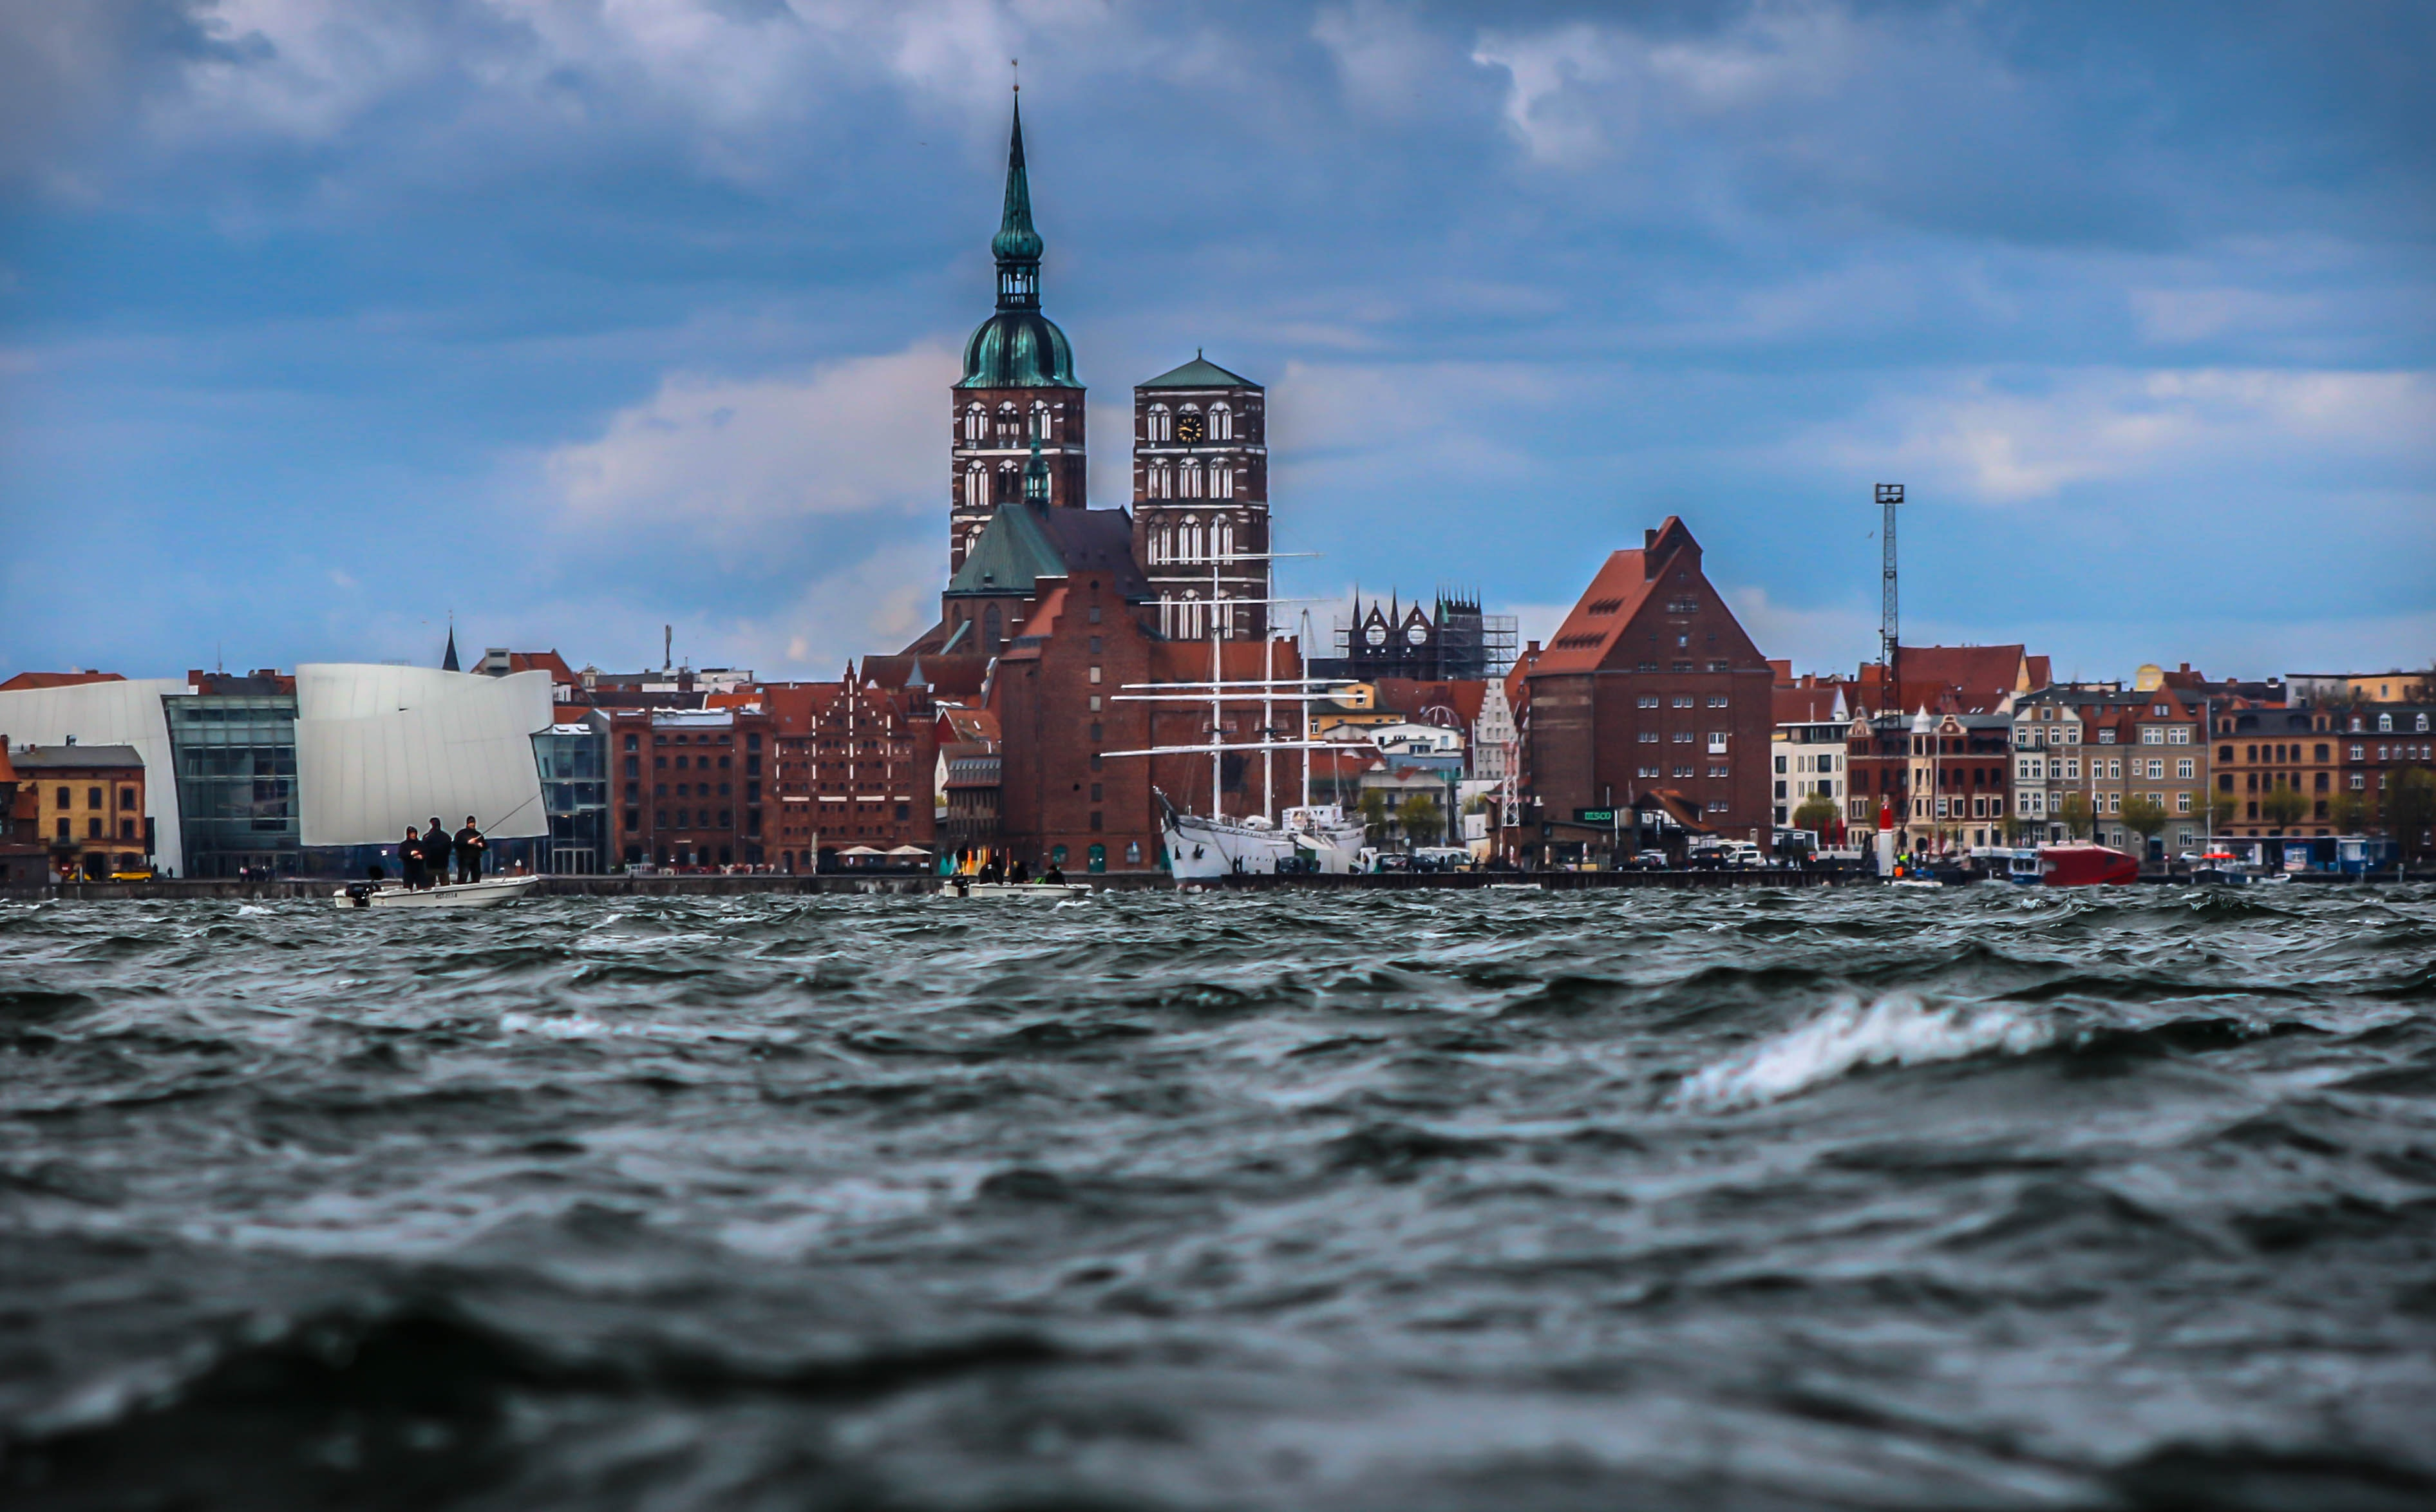 Low Angle Photography of Establishment With Church, Architecture, Skyline, Watercraft, Water, HQ Photo